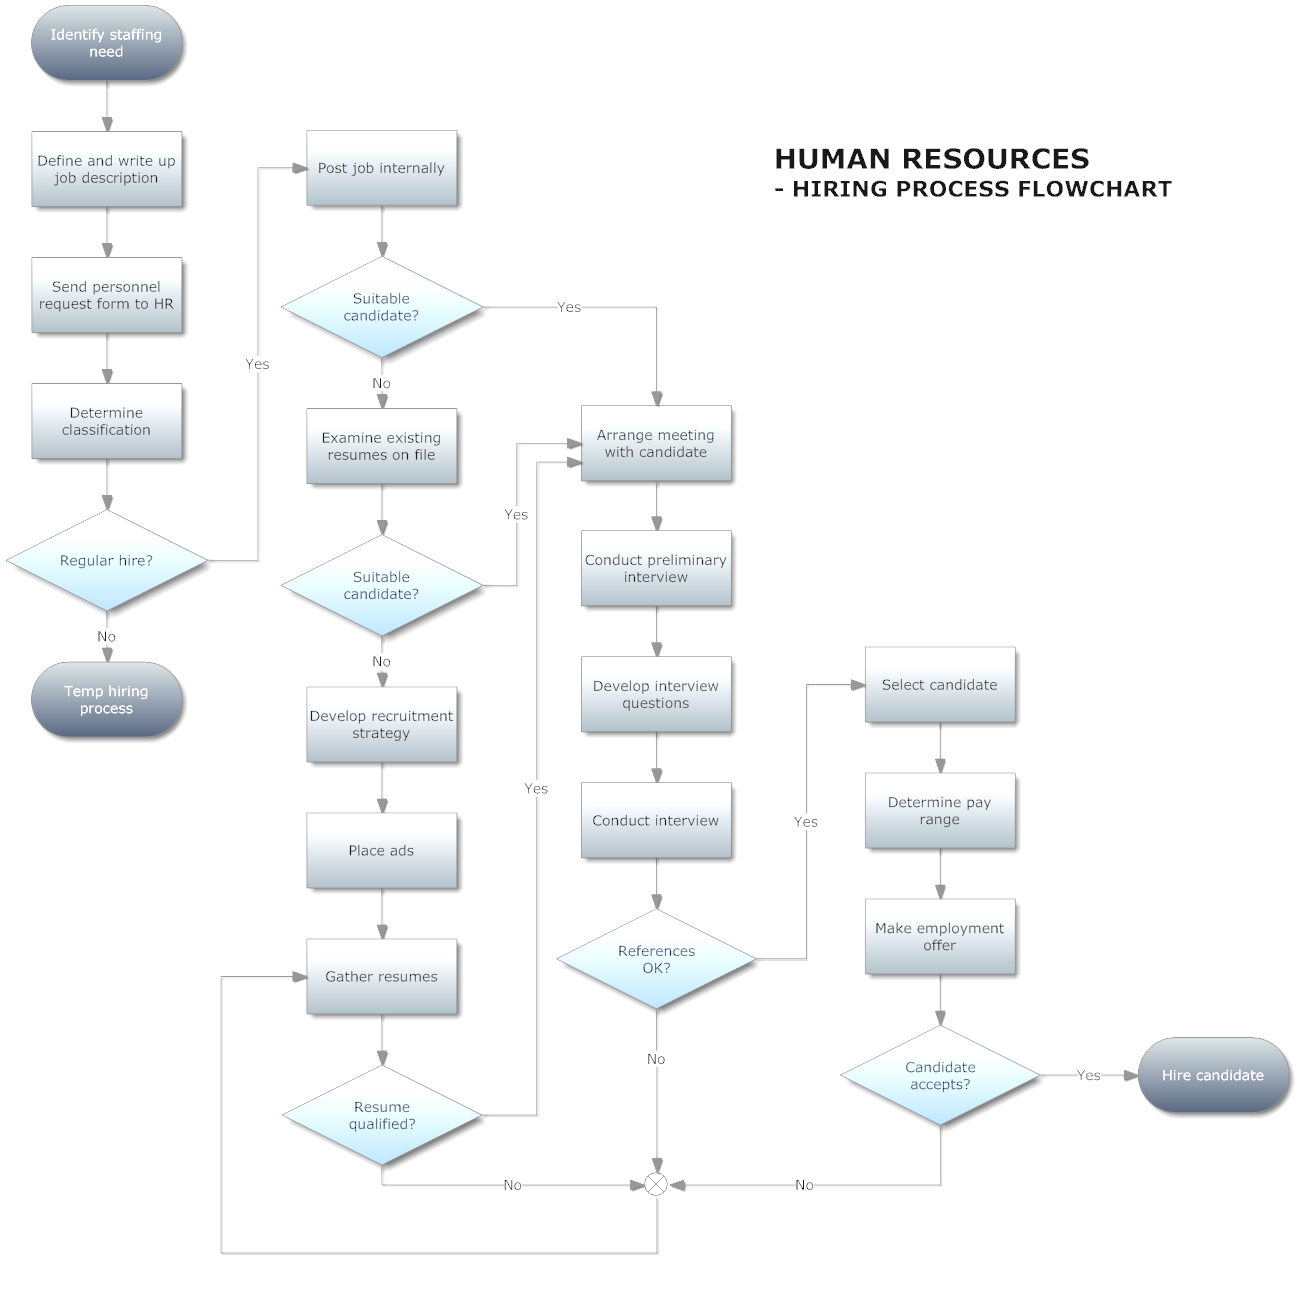 Process Flow Diagram Ppap. Global Sourcing Services. Ppap